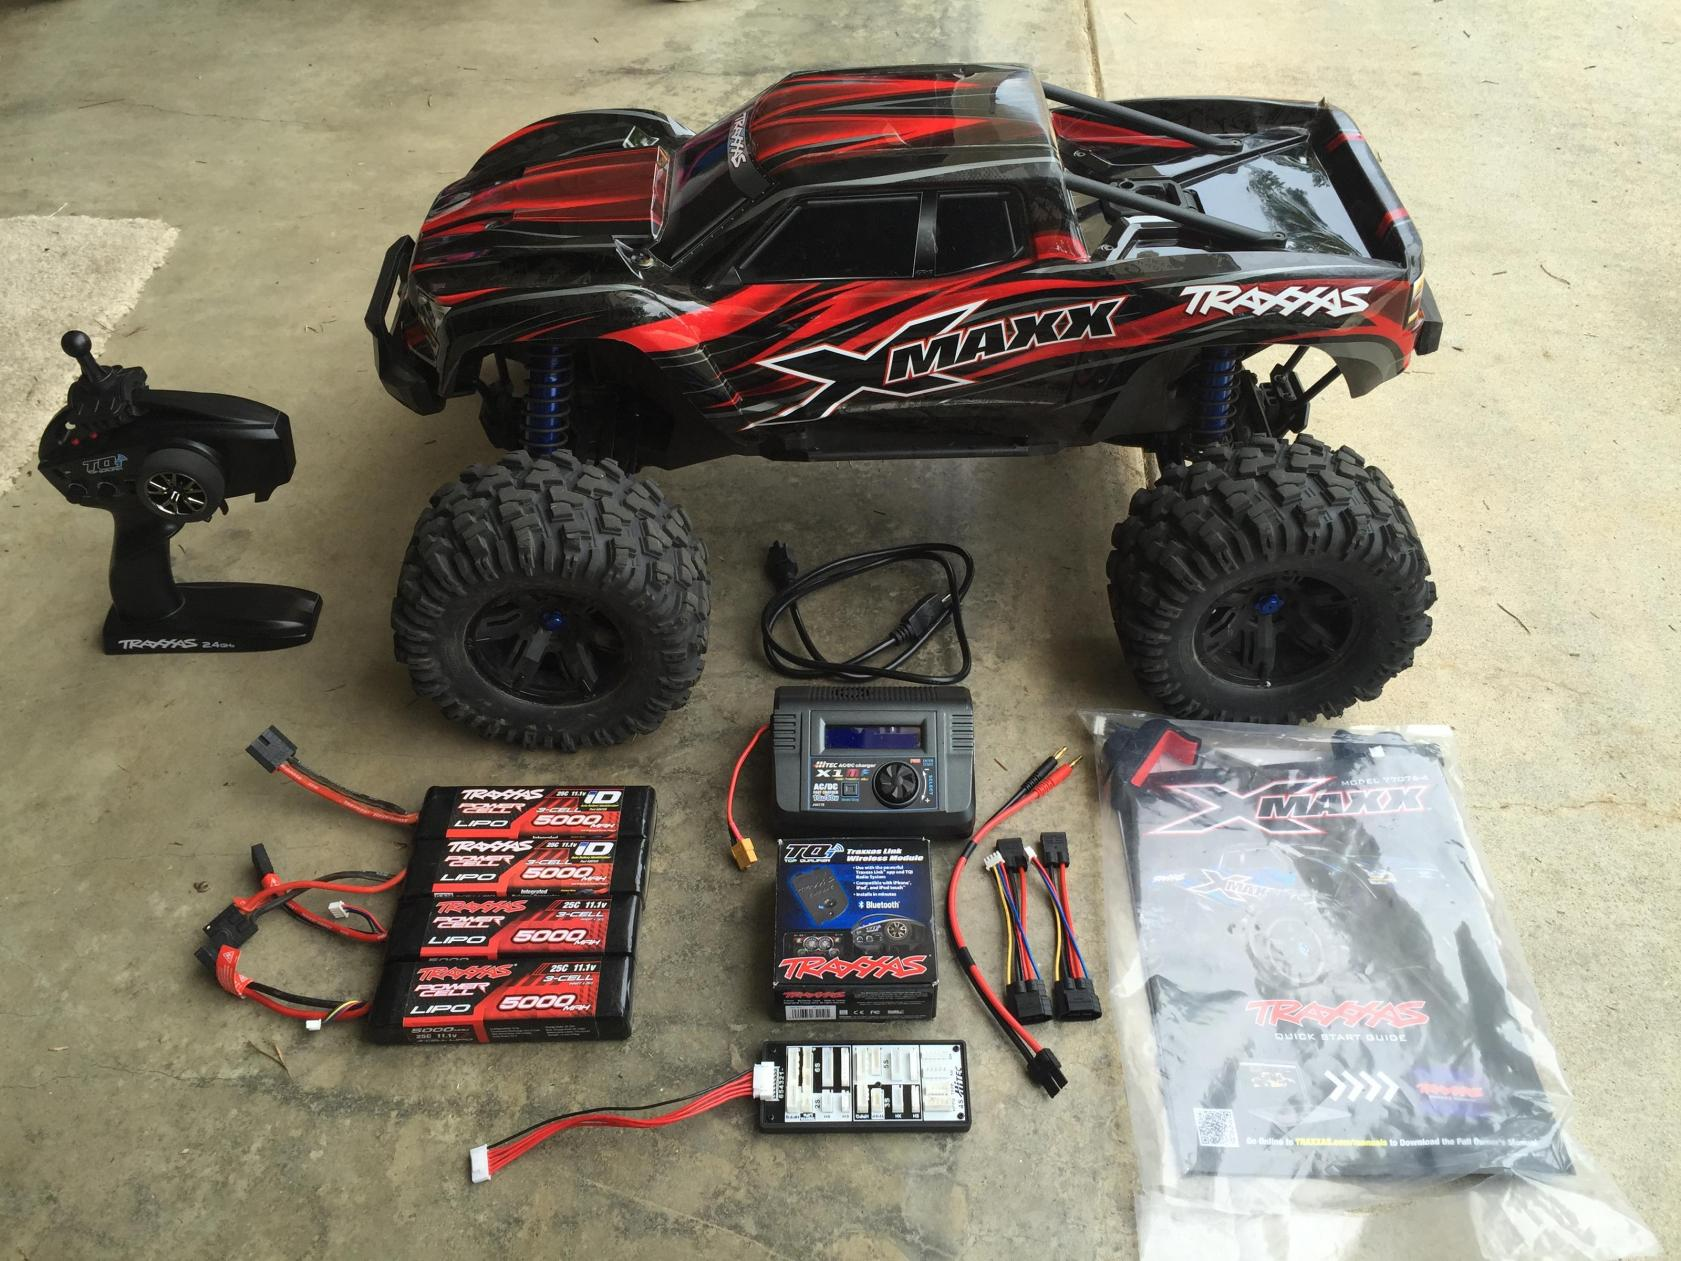 traxxas x maxx in great condition 4 traxxas 3s lipos hitec x1 mf charger fs ft r c tech forums. Black Bedroom Furniture Sets. Home Design Ideas